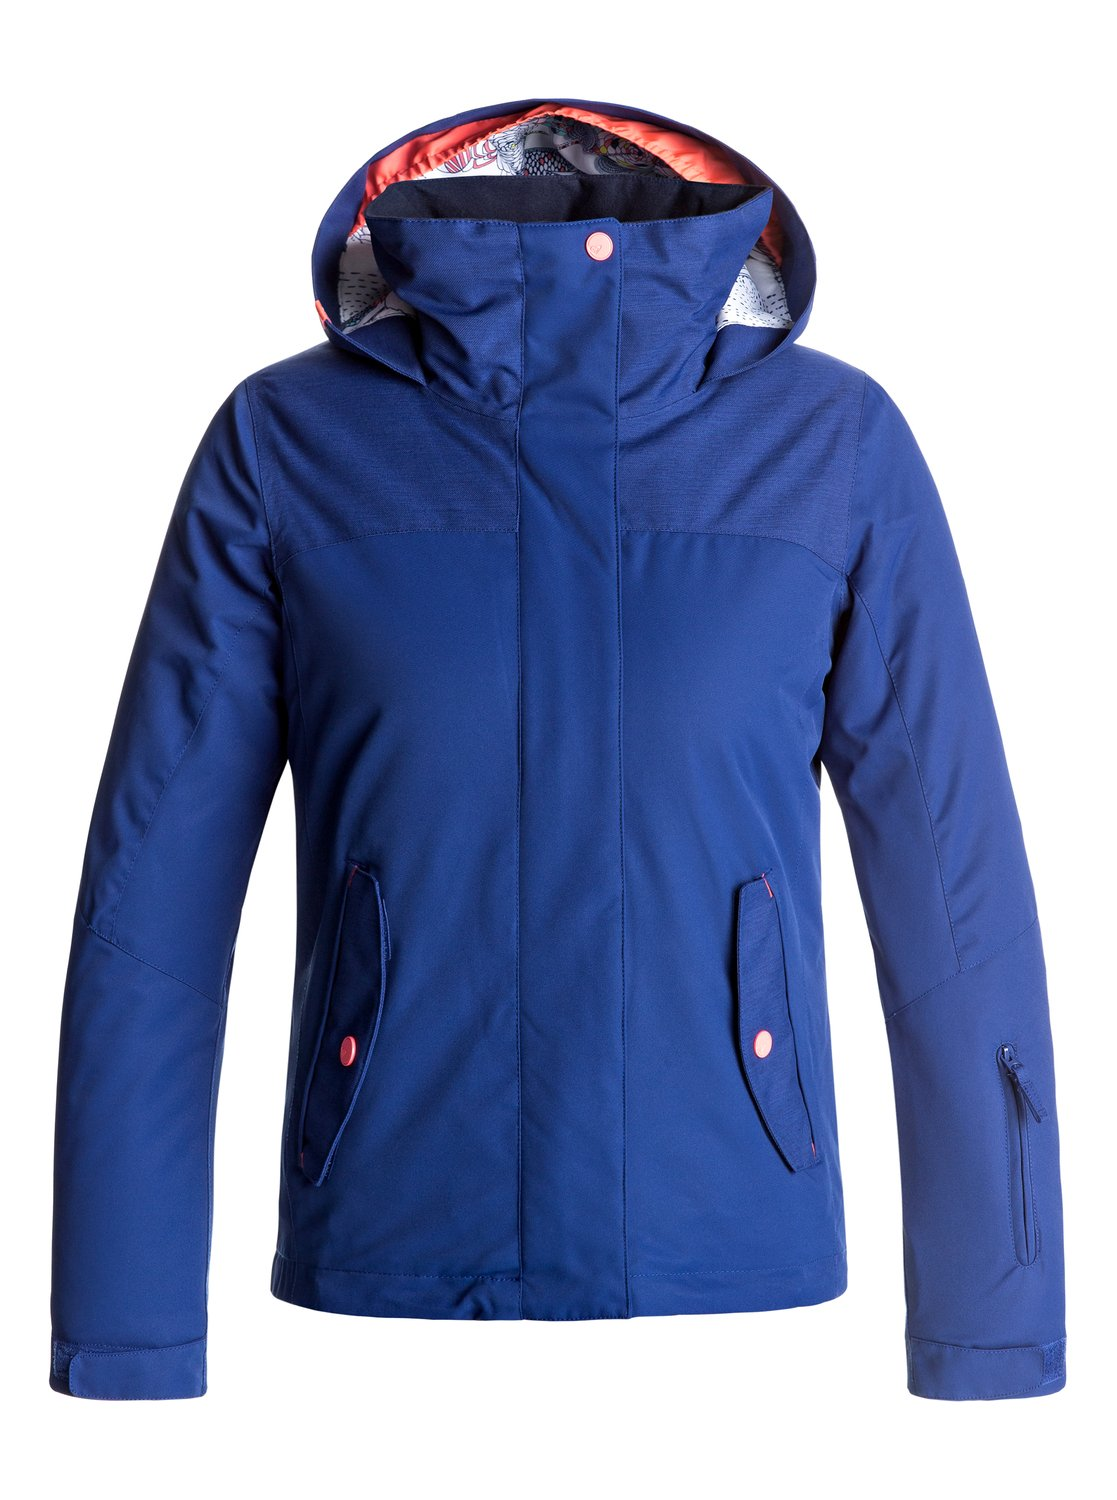 ROXY Jetty - Veste de snow pour Fille - Roxy